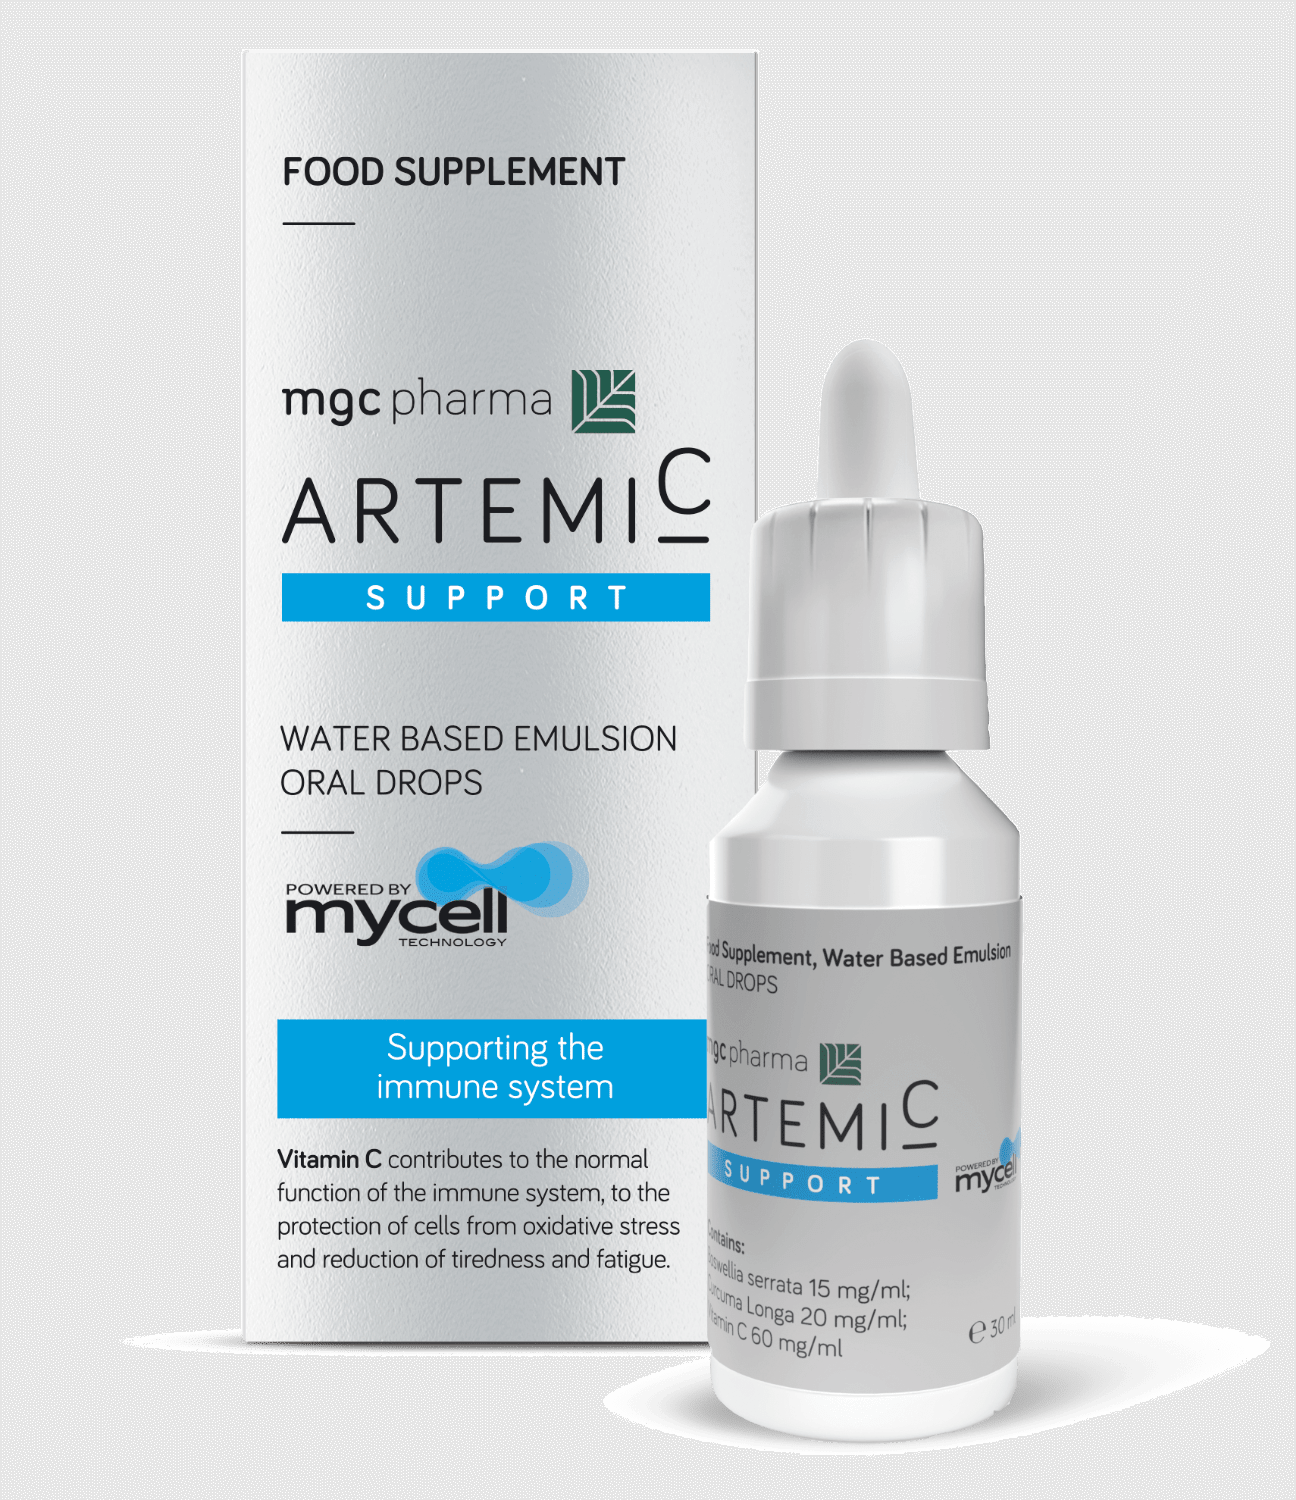 ArtemiC Support protects the cells from oxidative stress, reduces tiredness and fatigue.